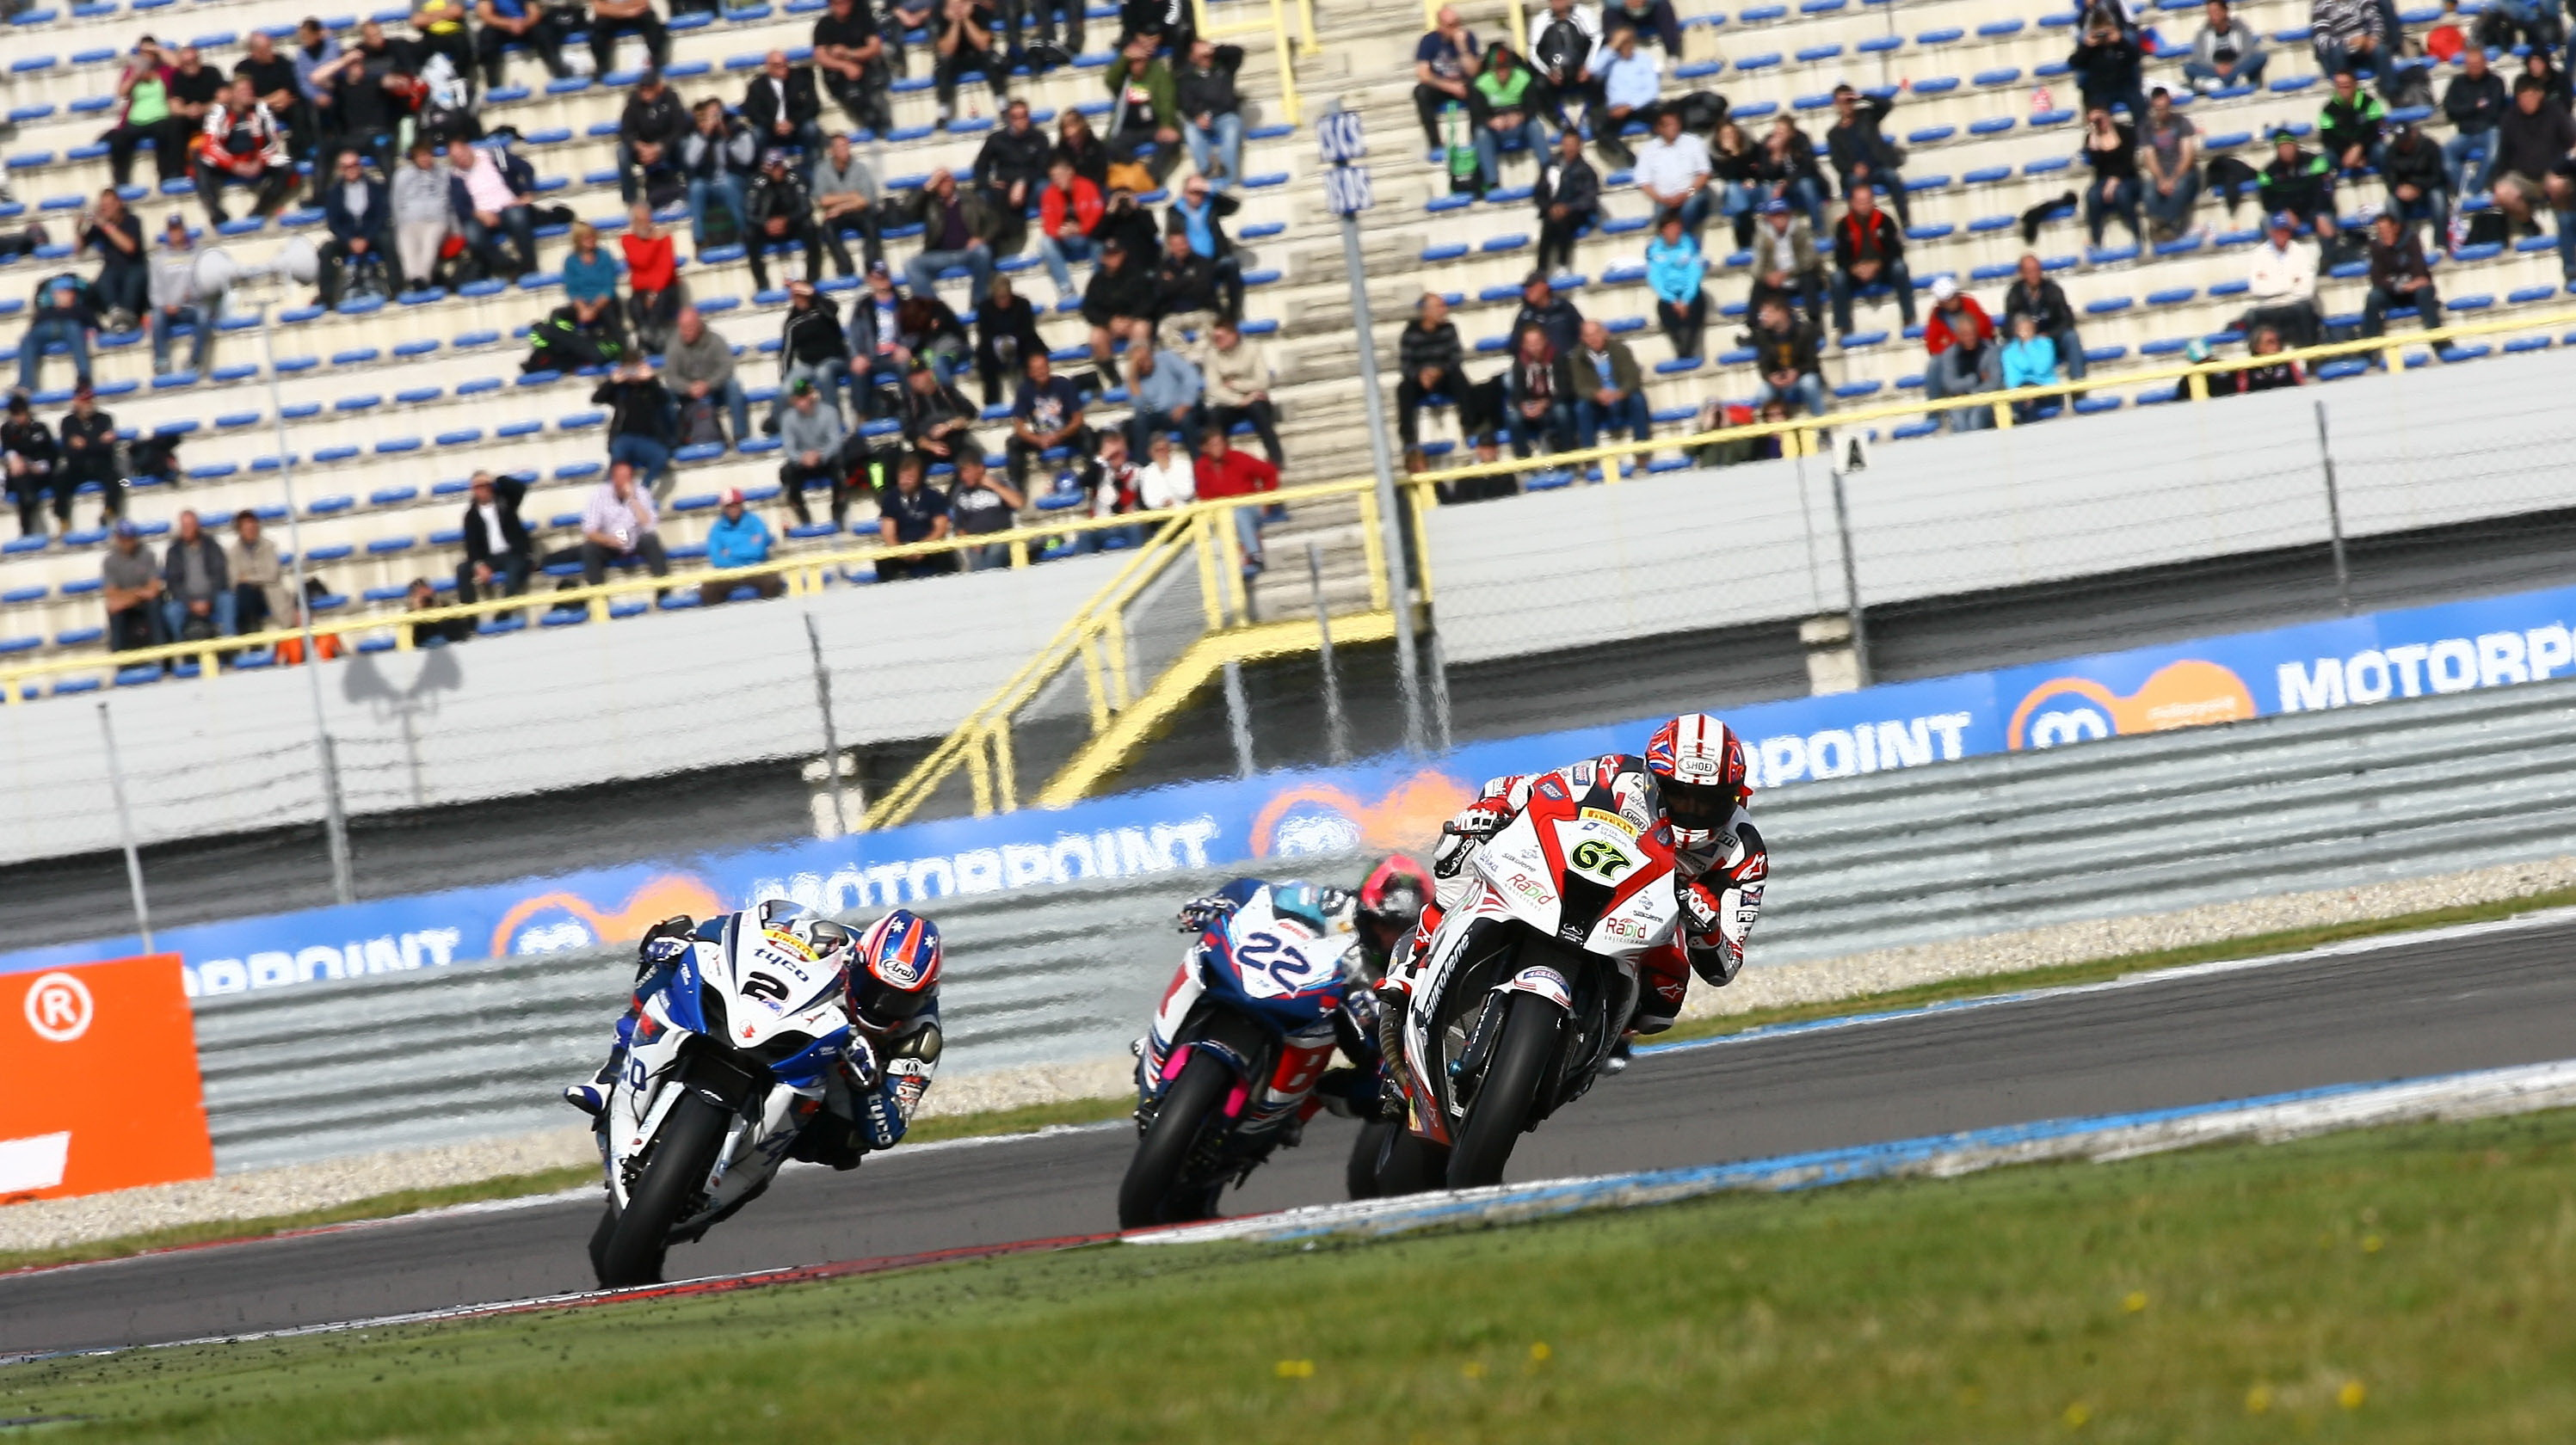 Shane Byrne, Josh Brookes, Alex Lowes, Assen, Sept 2012